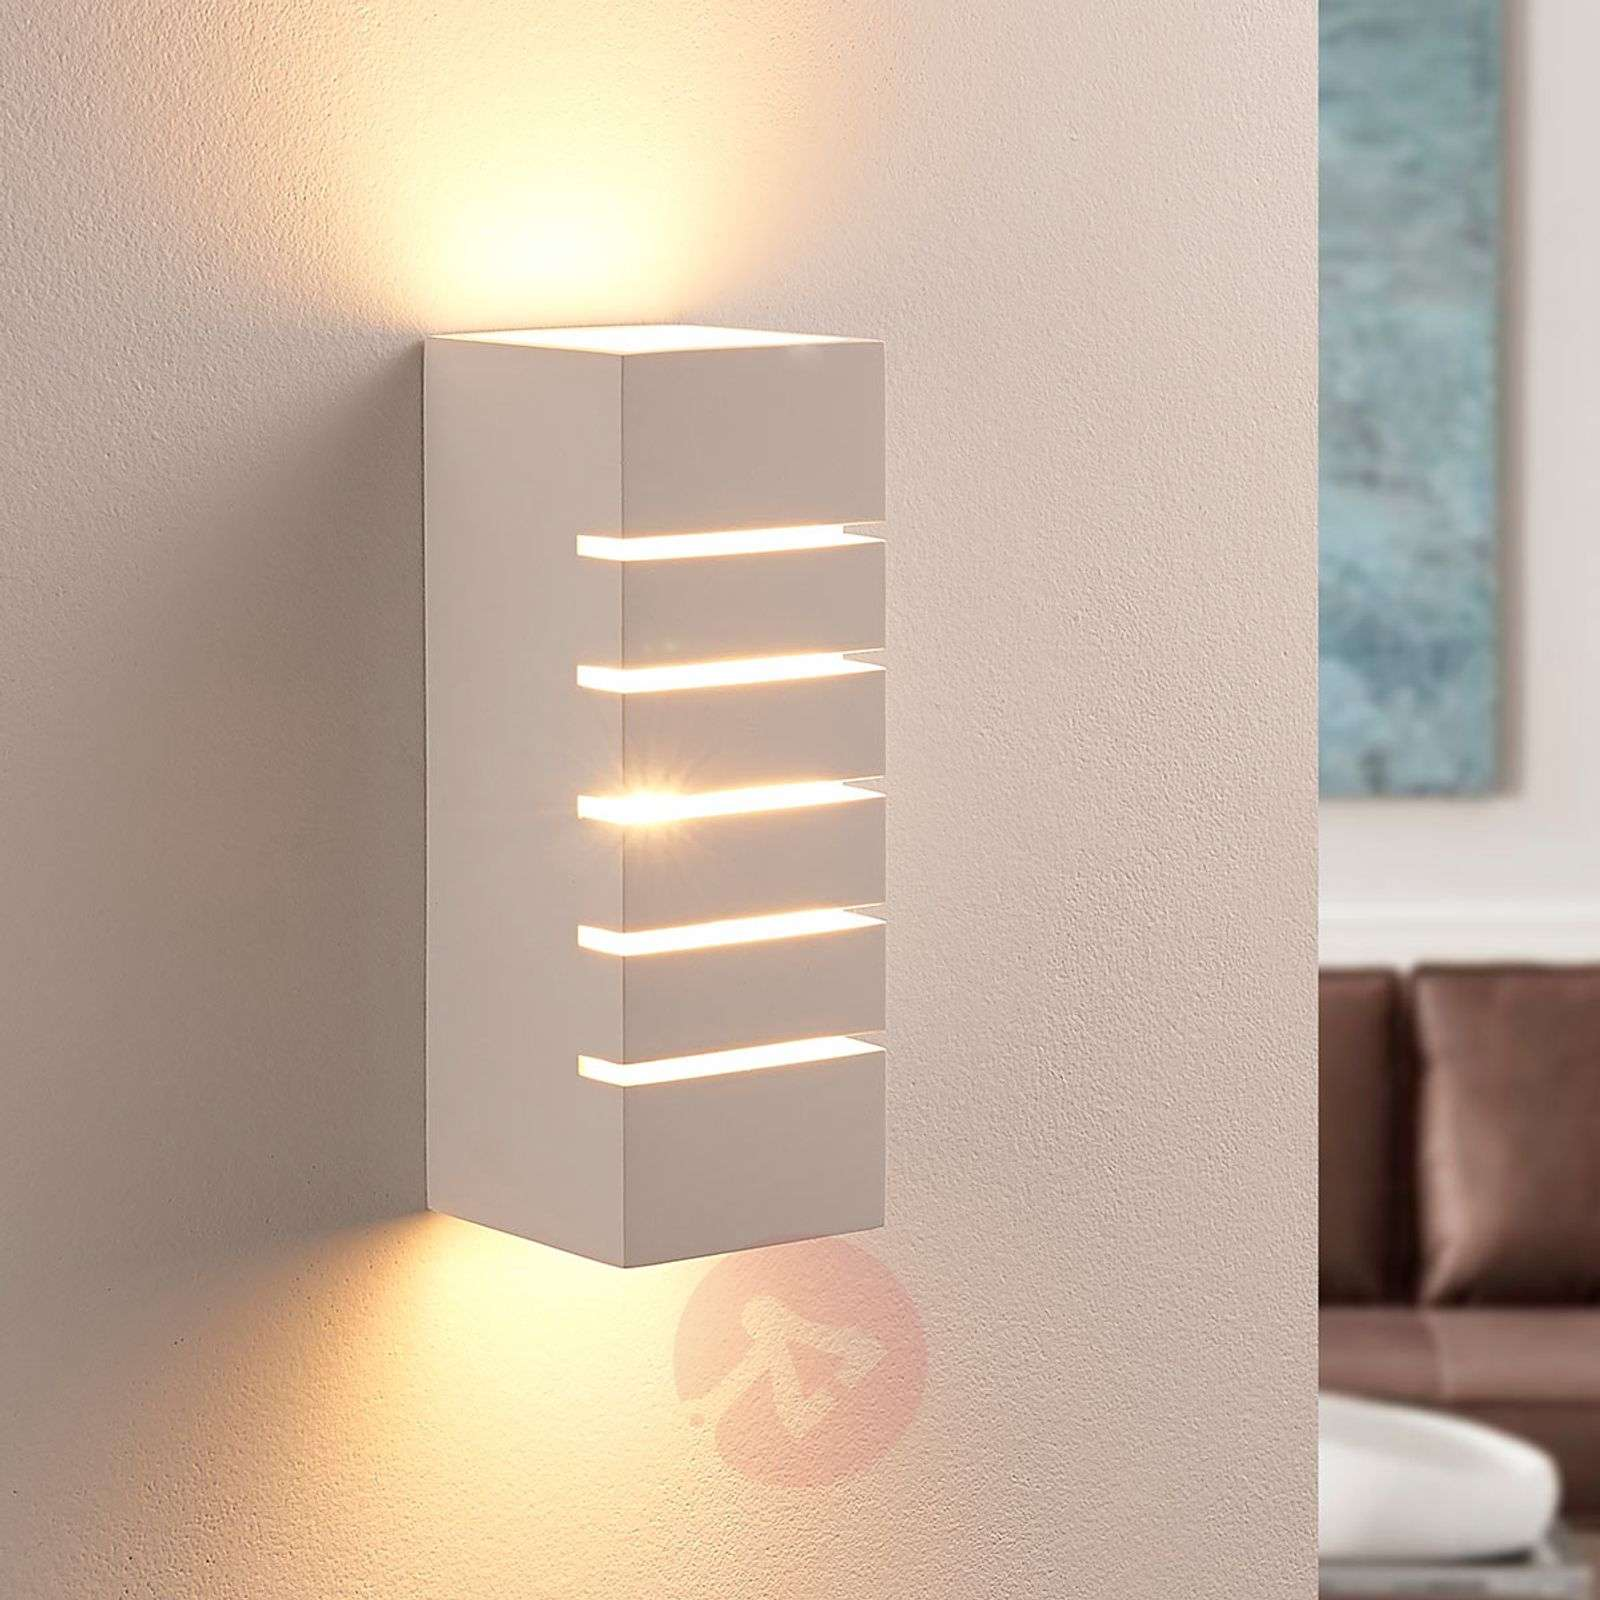 Plaster wall light Laslo with stripes, G9 LED-9621343-02